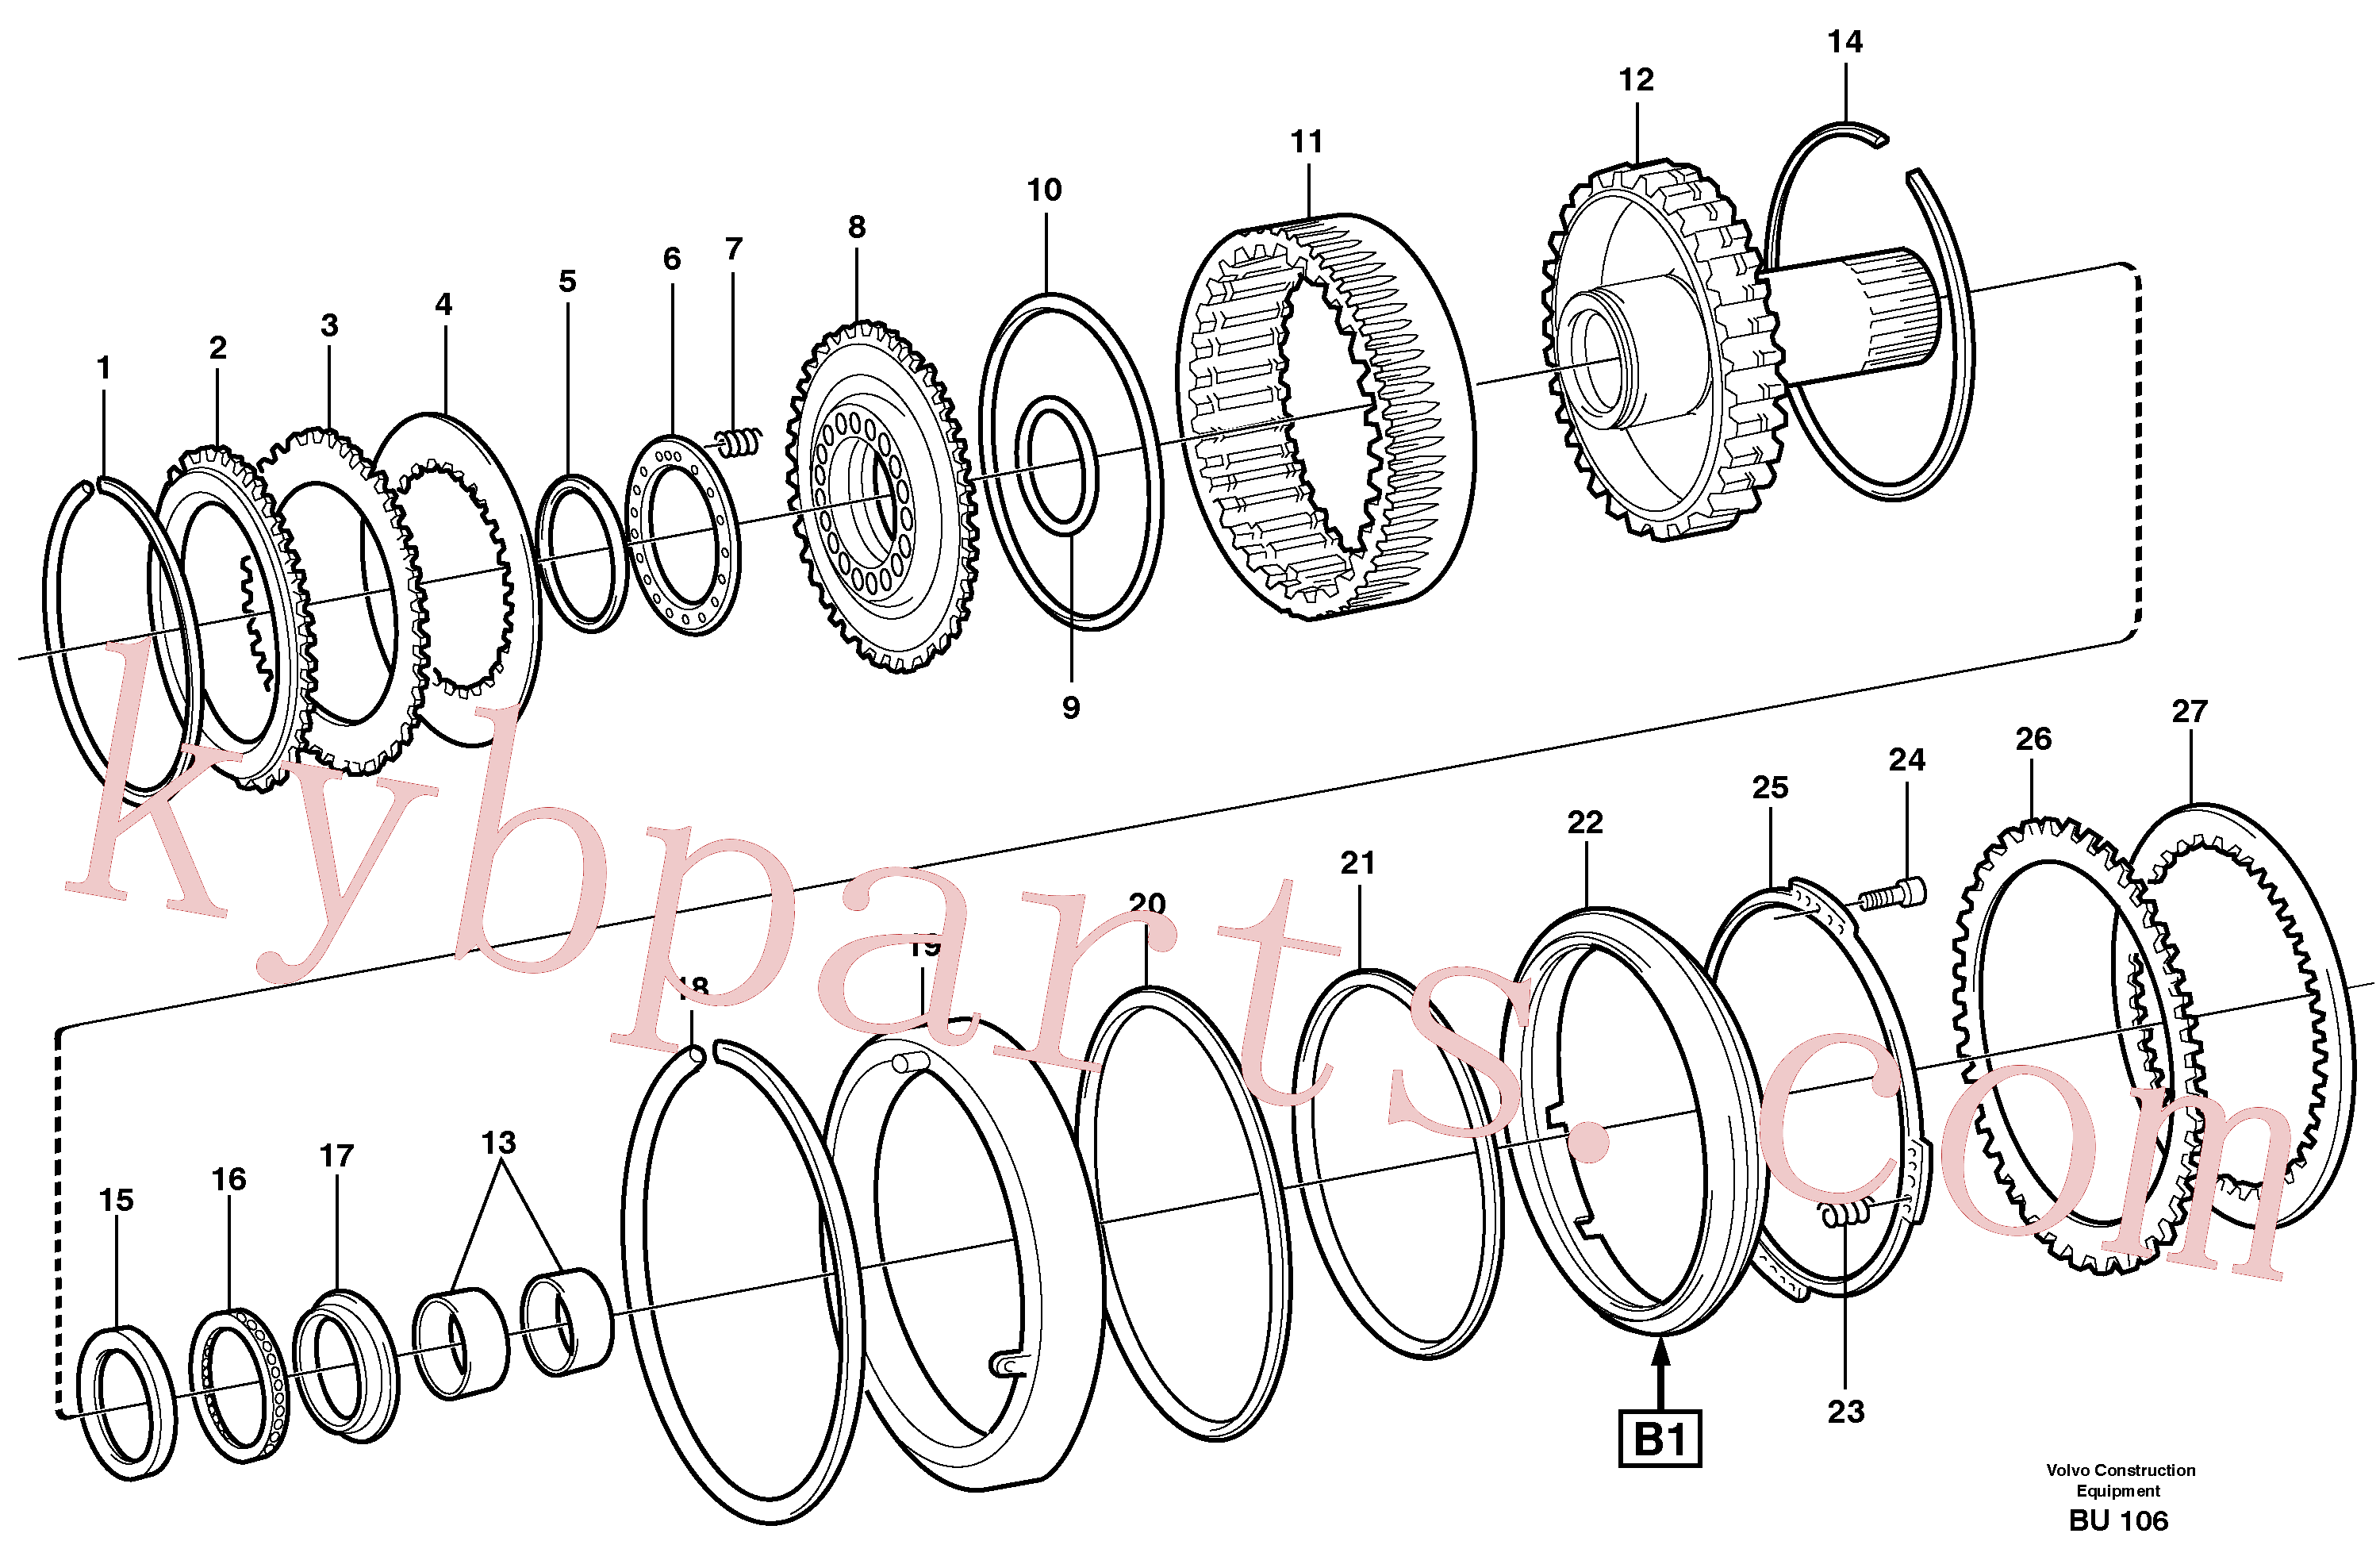 VOE11989805 for Volvo Clutch and brake(BU106 assembly)